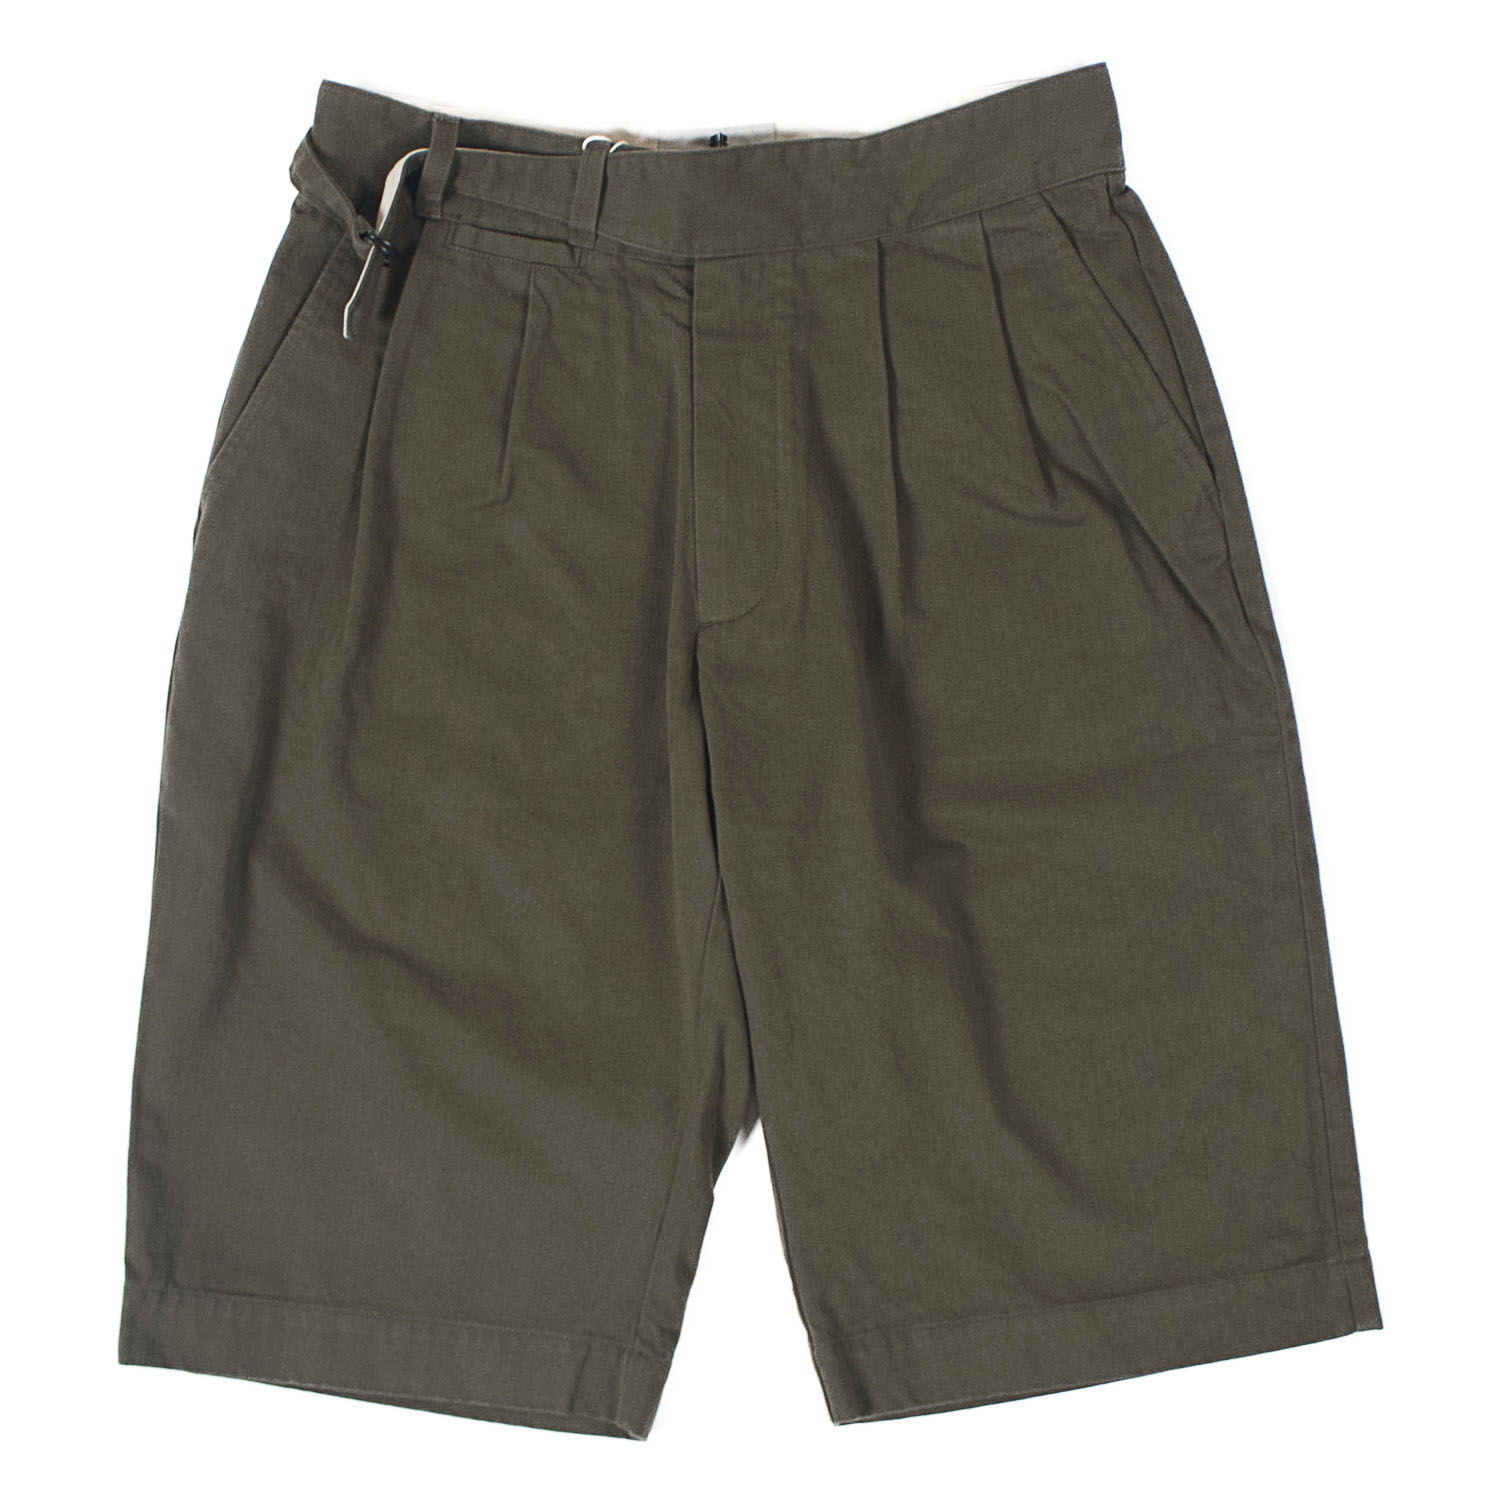 BHR Summer Half pants (Khaki)